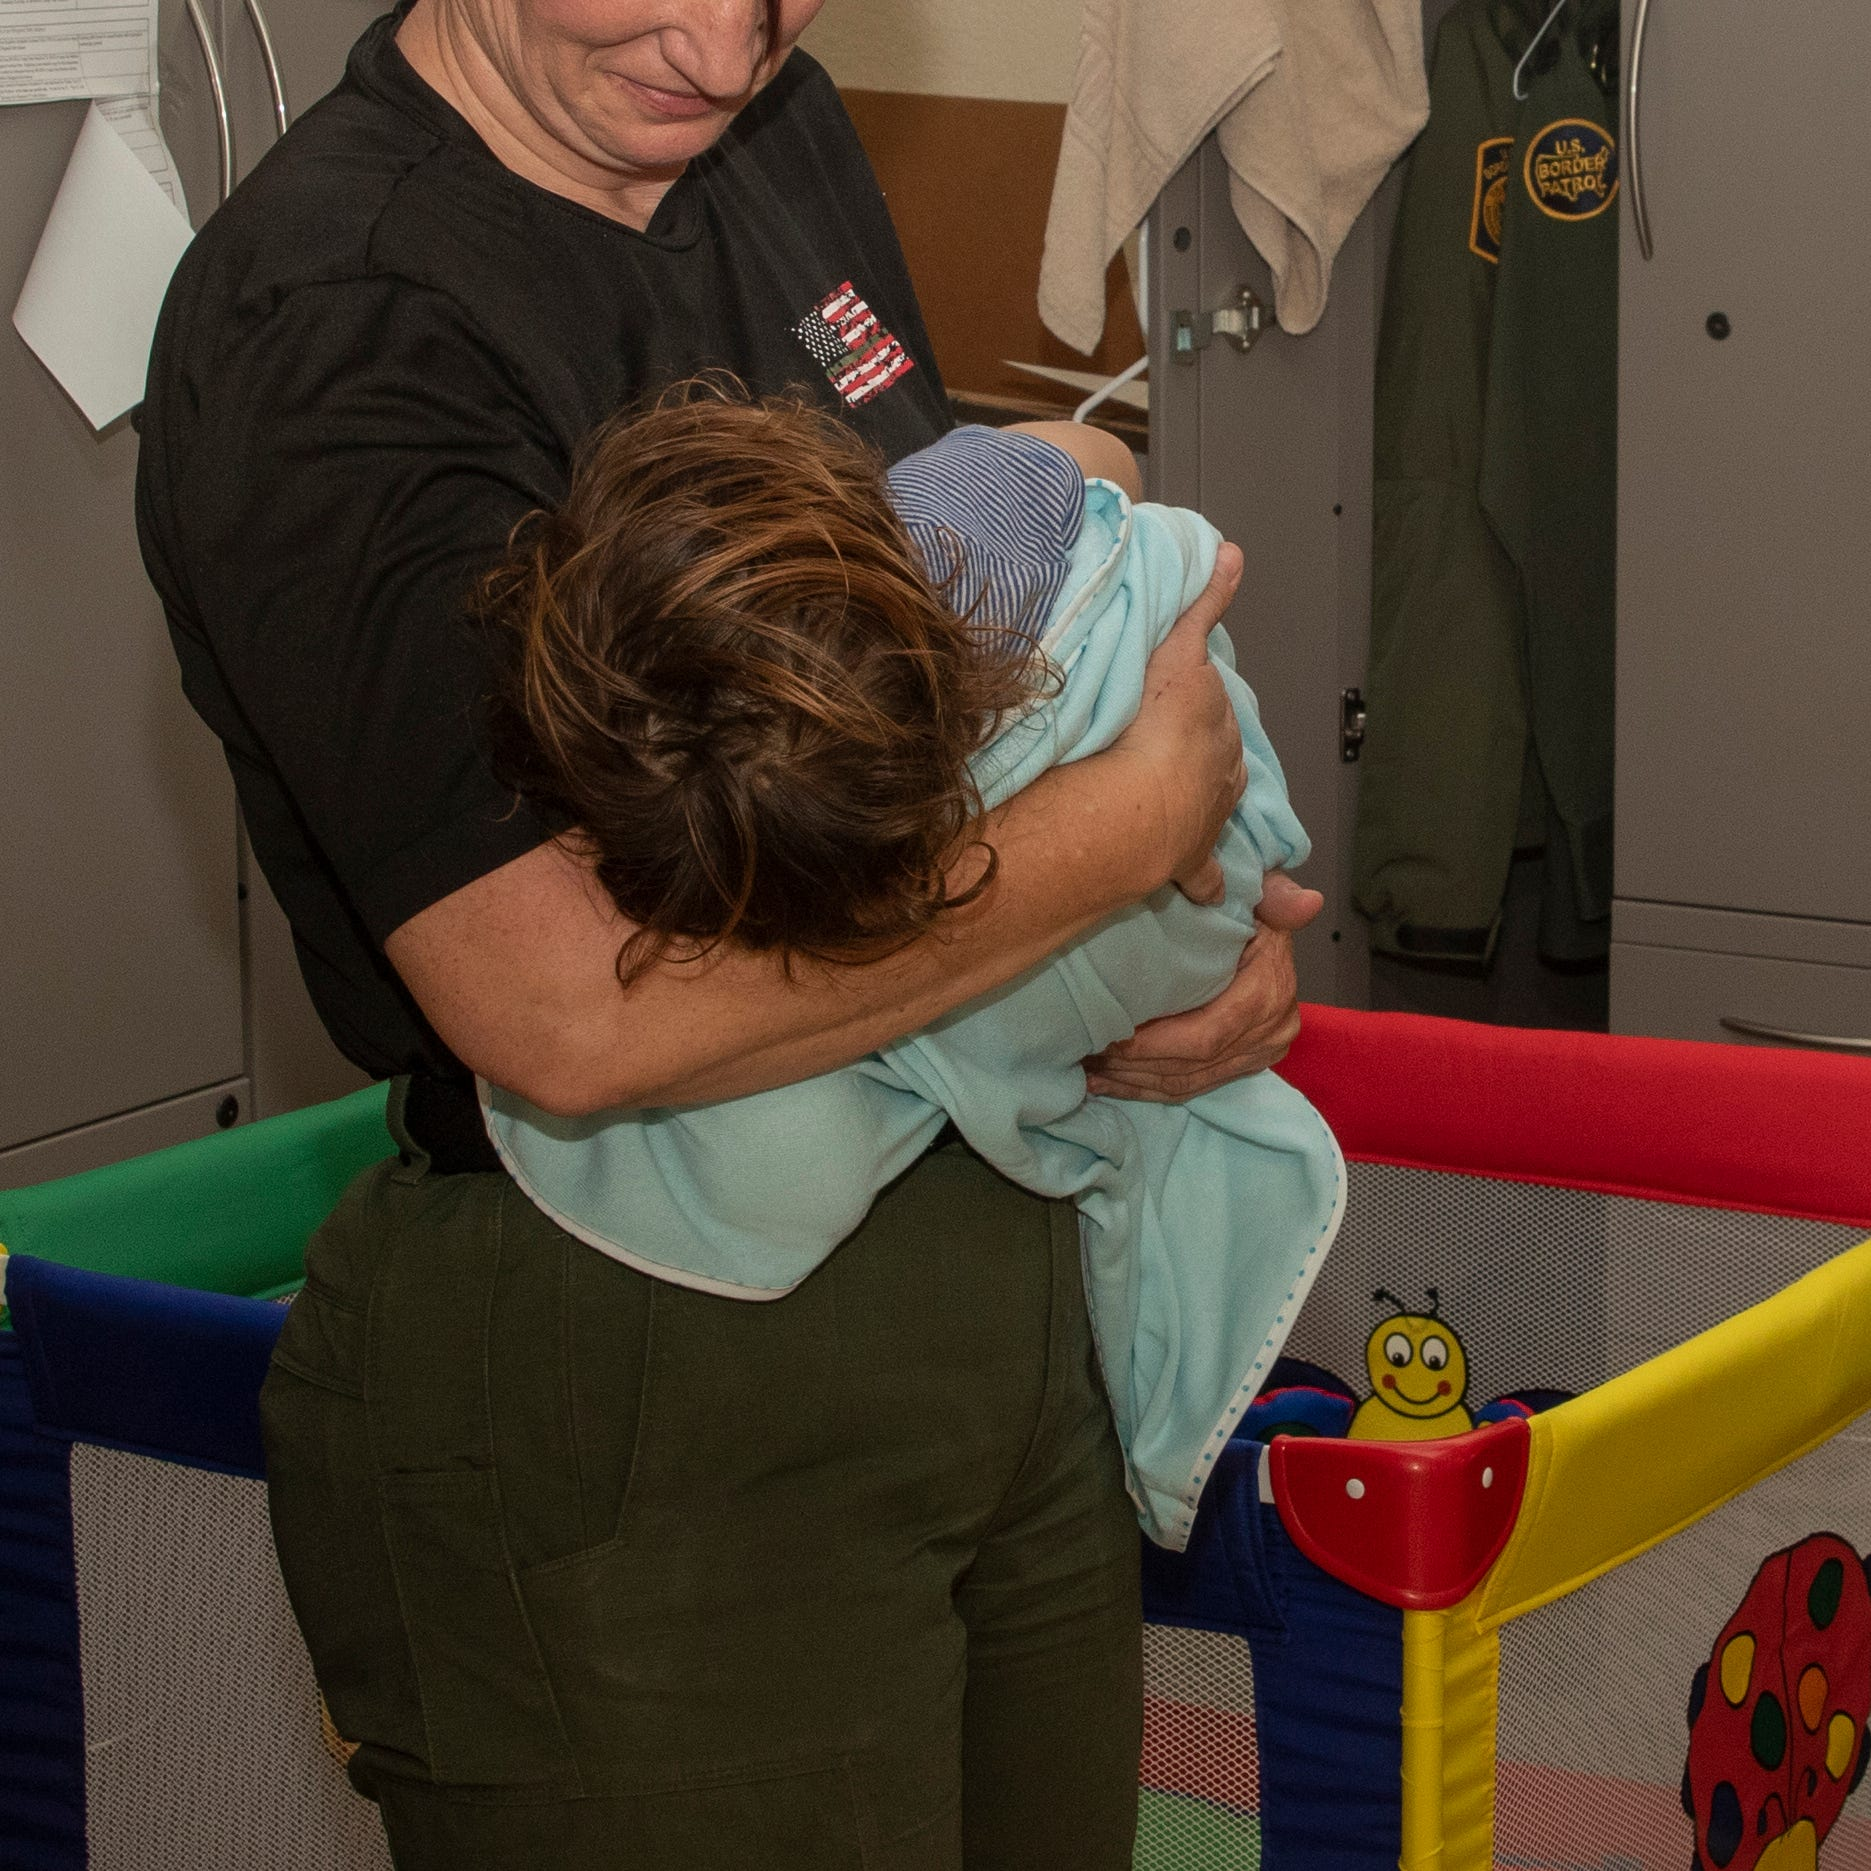 Border Patrol agents care for child after undocumented, pregnant mother hospitalized